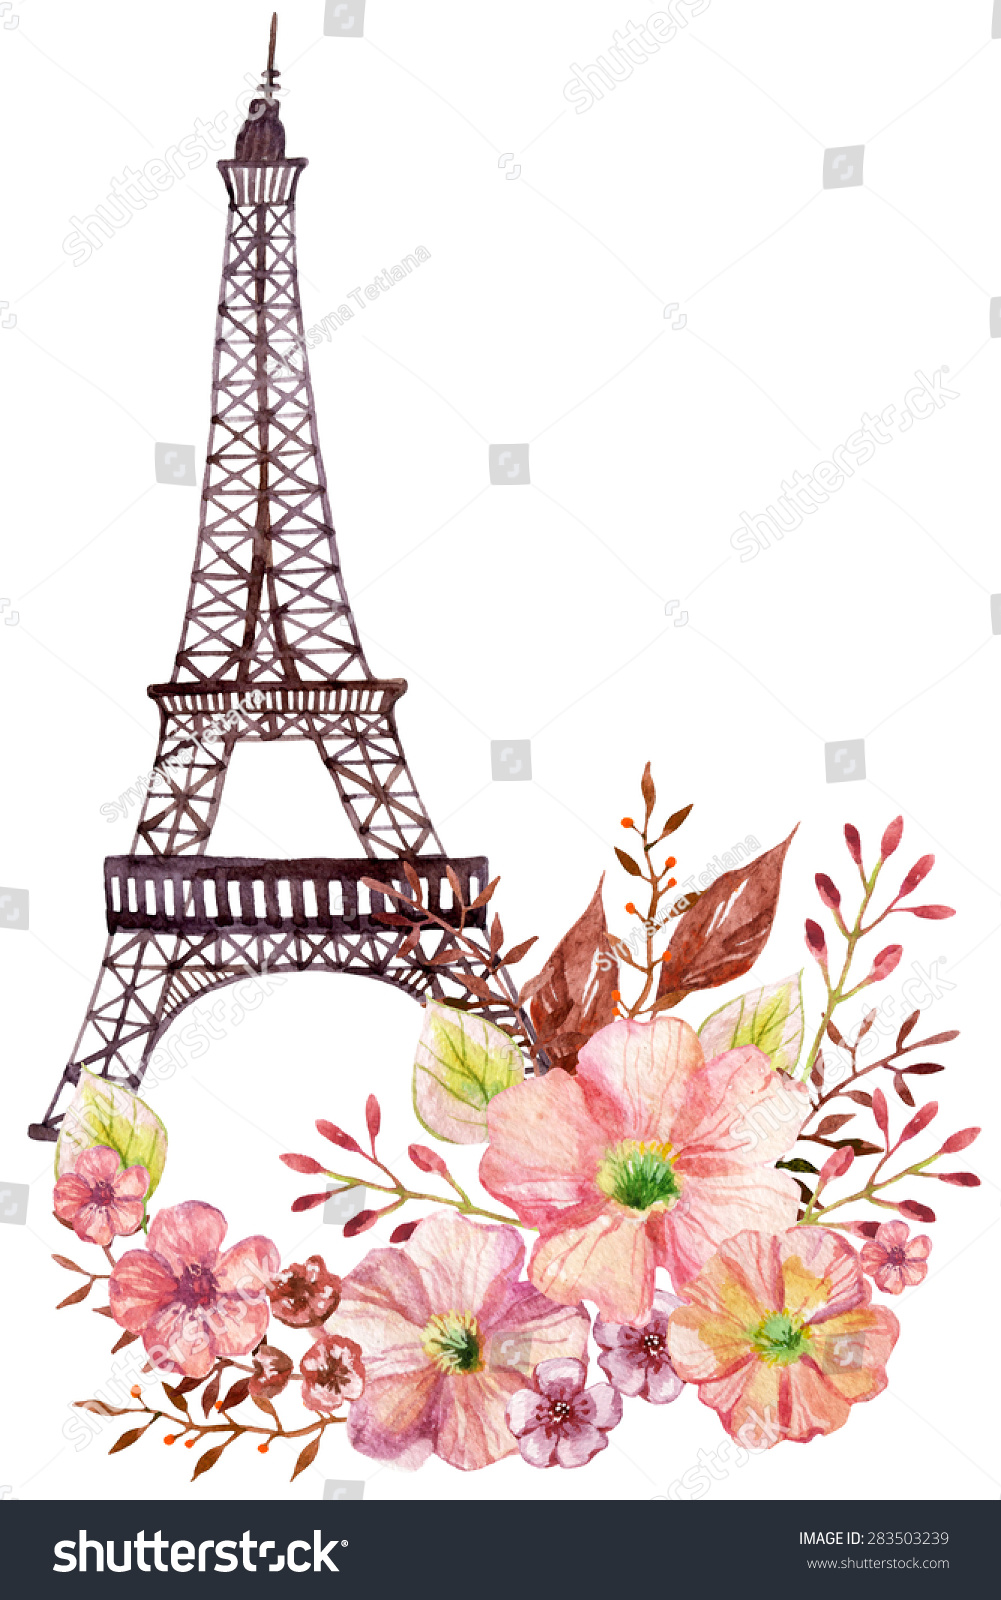 paris watercolor illustration hand painted eiffel stock illustration 283503239 shutterstock. Black Bedroom Furniture Sets. Home Design Ideas